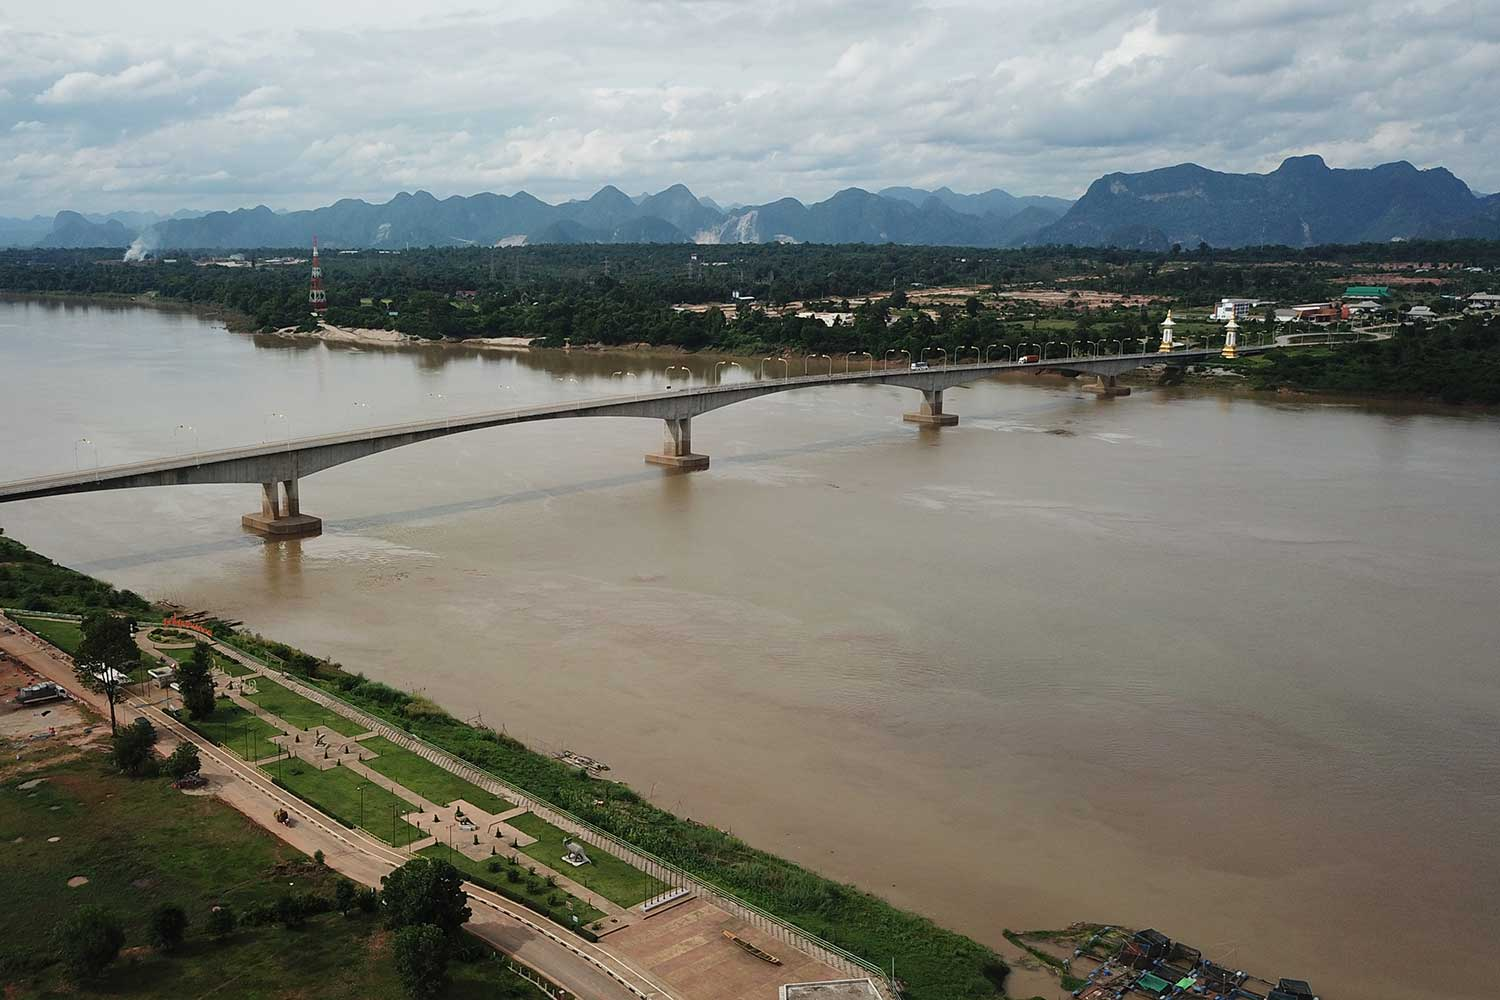 The water level of the Mekong River in Nakhon Phanom's Muang district. (Photo by Pattanapong Sripiachai)